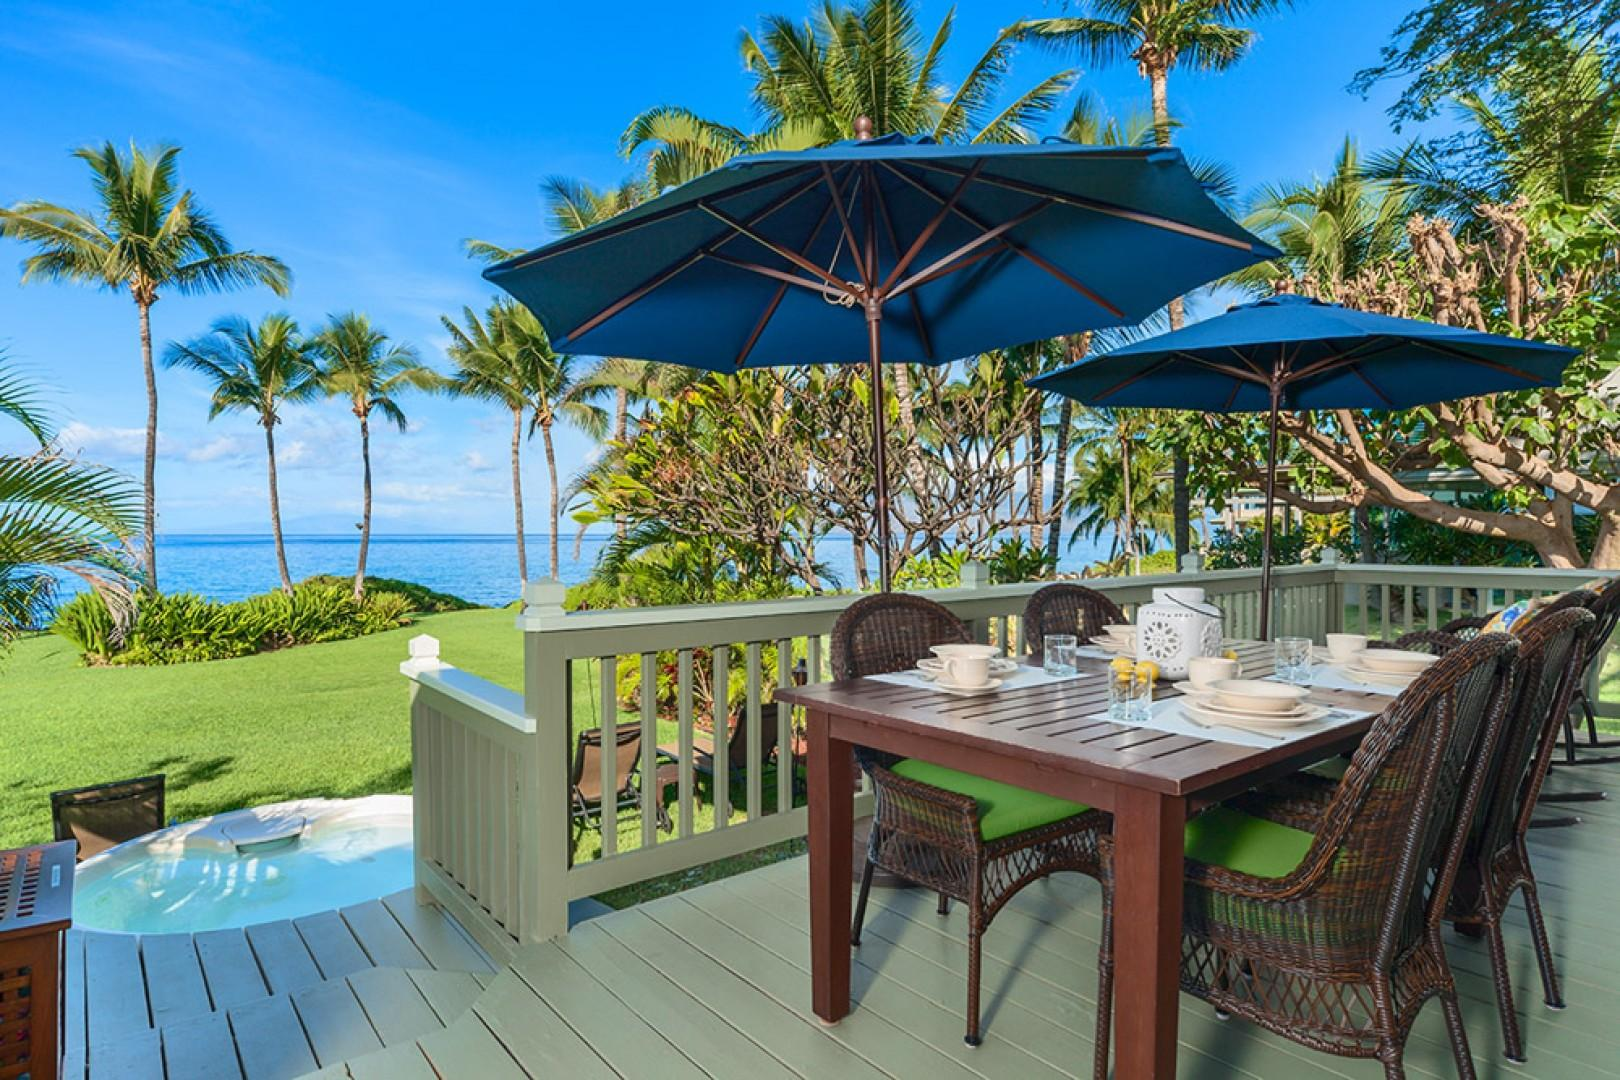 Wailea Sunset Bungalow - Ocean Front Patio with BBQ, Outdoor Dining & Lounging and Hot Tub. We also supply beach toys, tiki torches, and firewood for the beachfront campfire pit